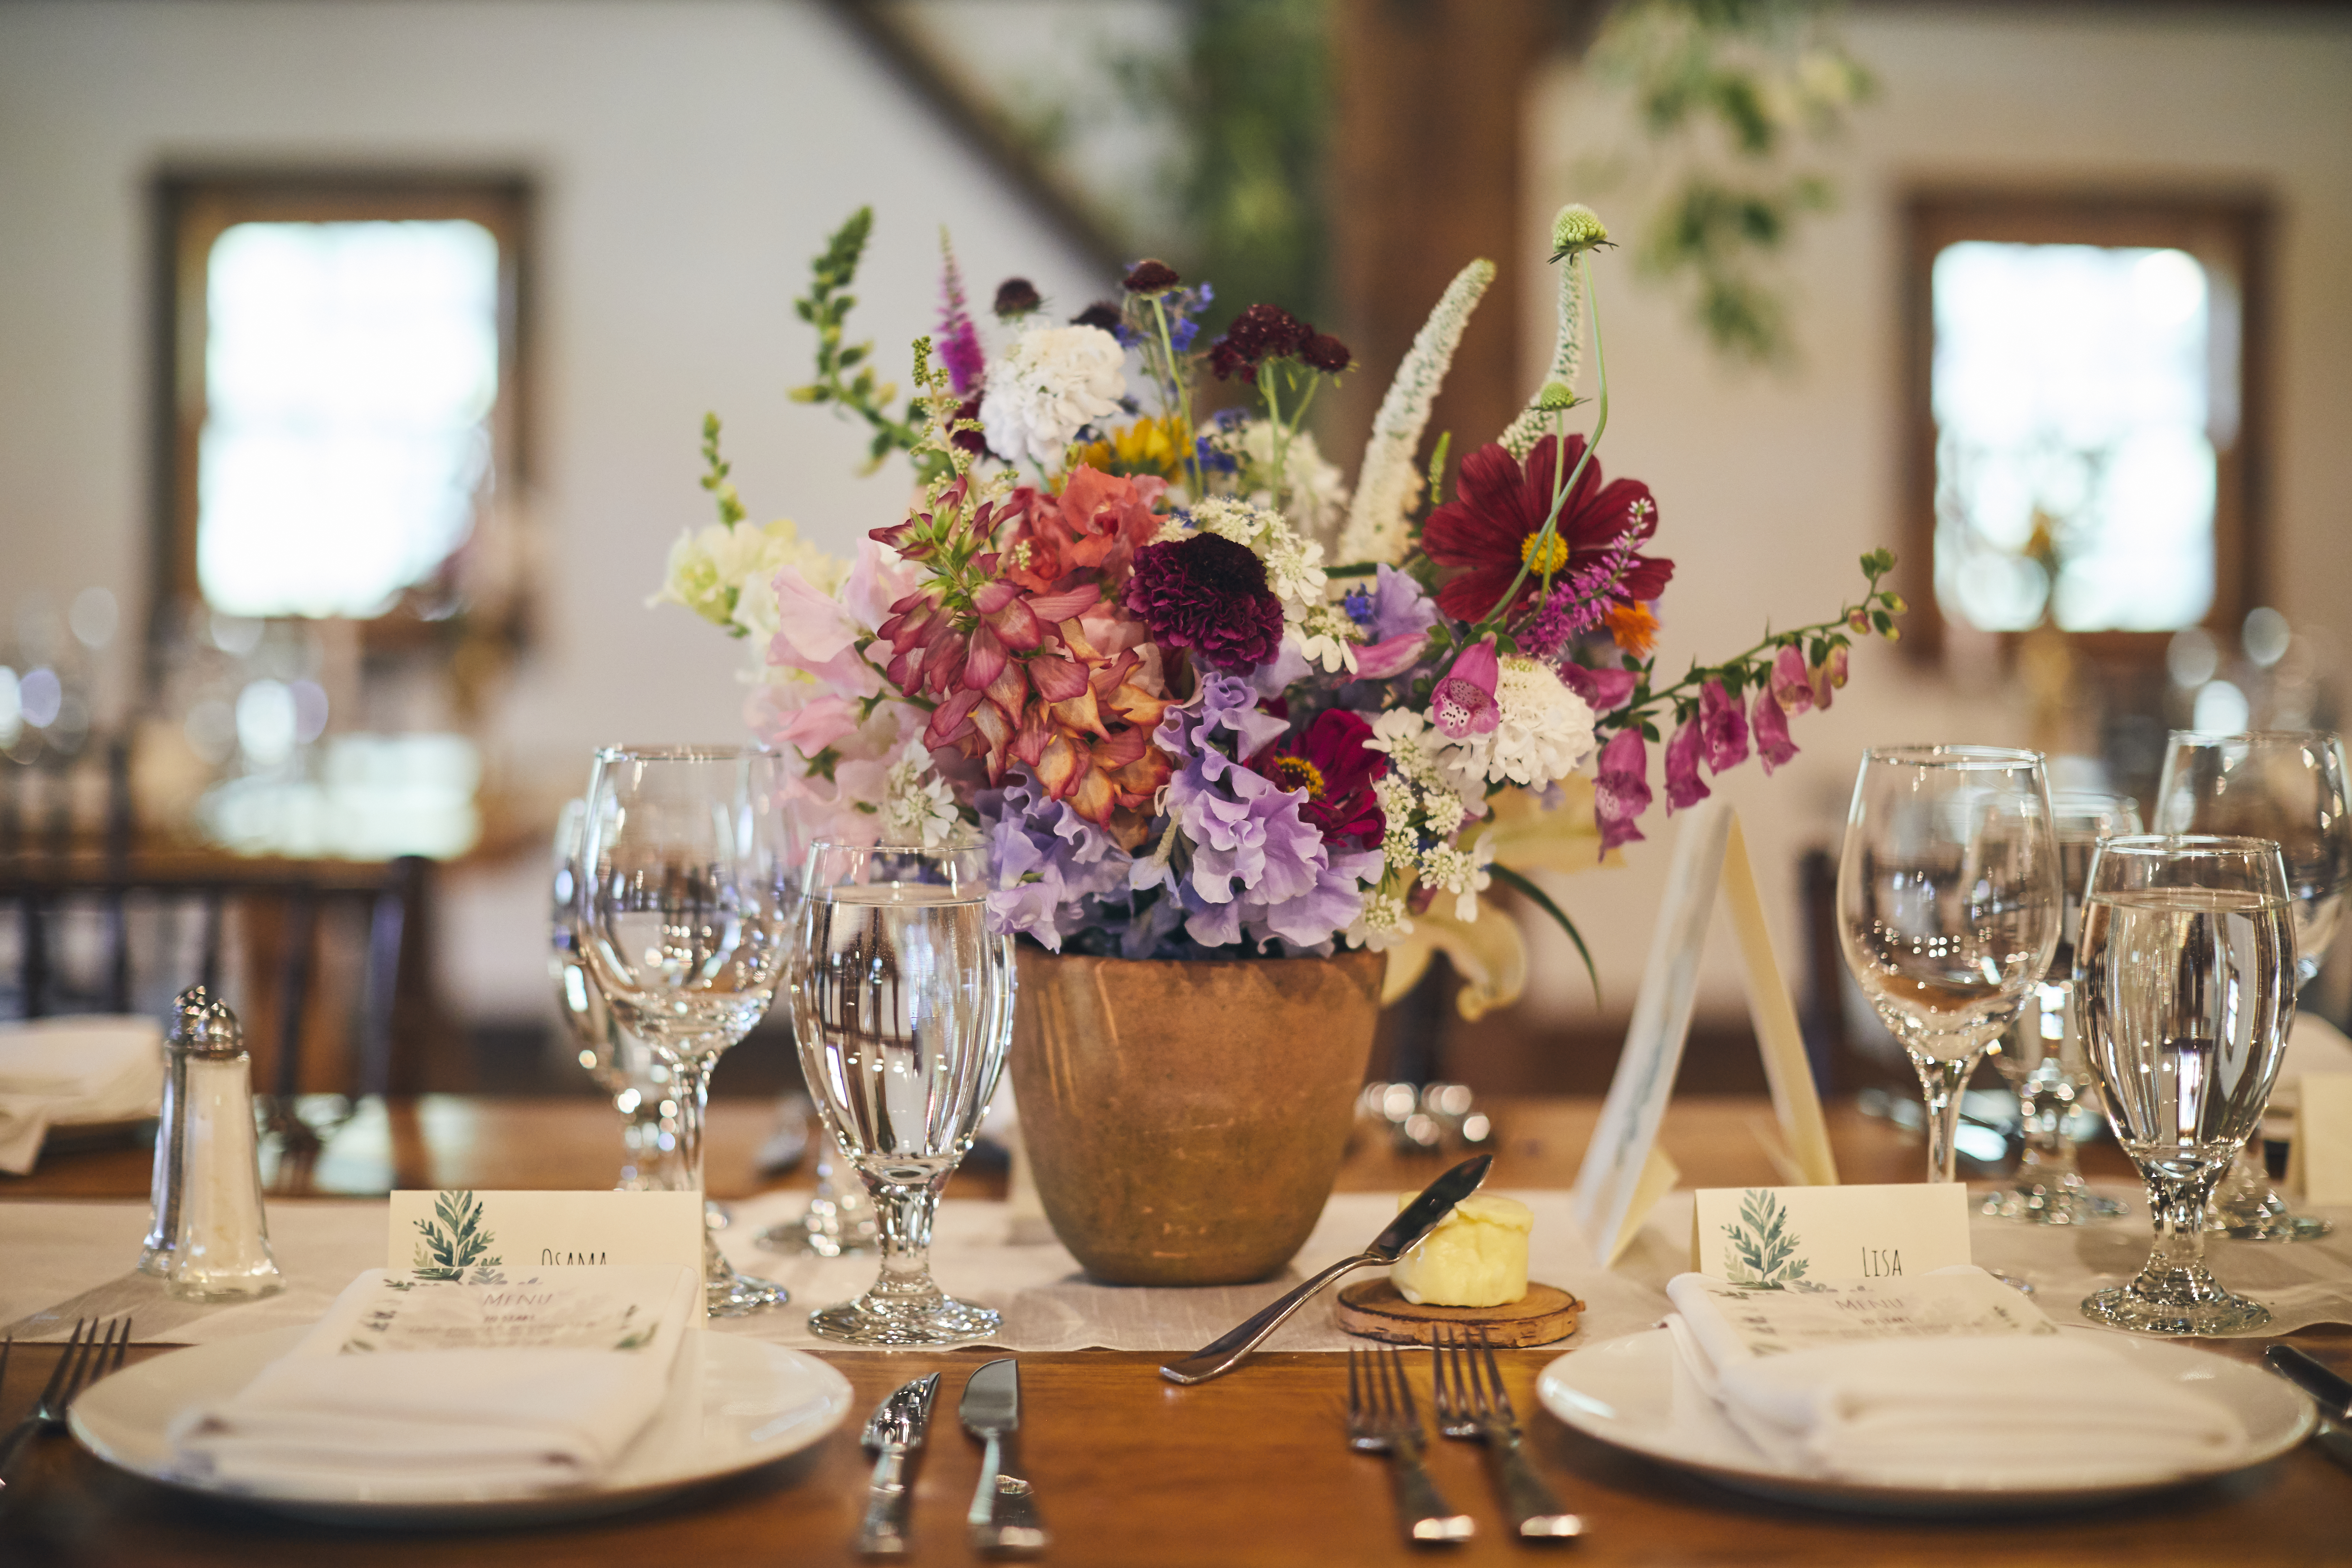 table set with water glasses and a large flower bouquet